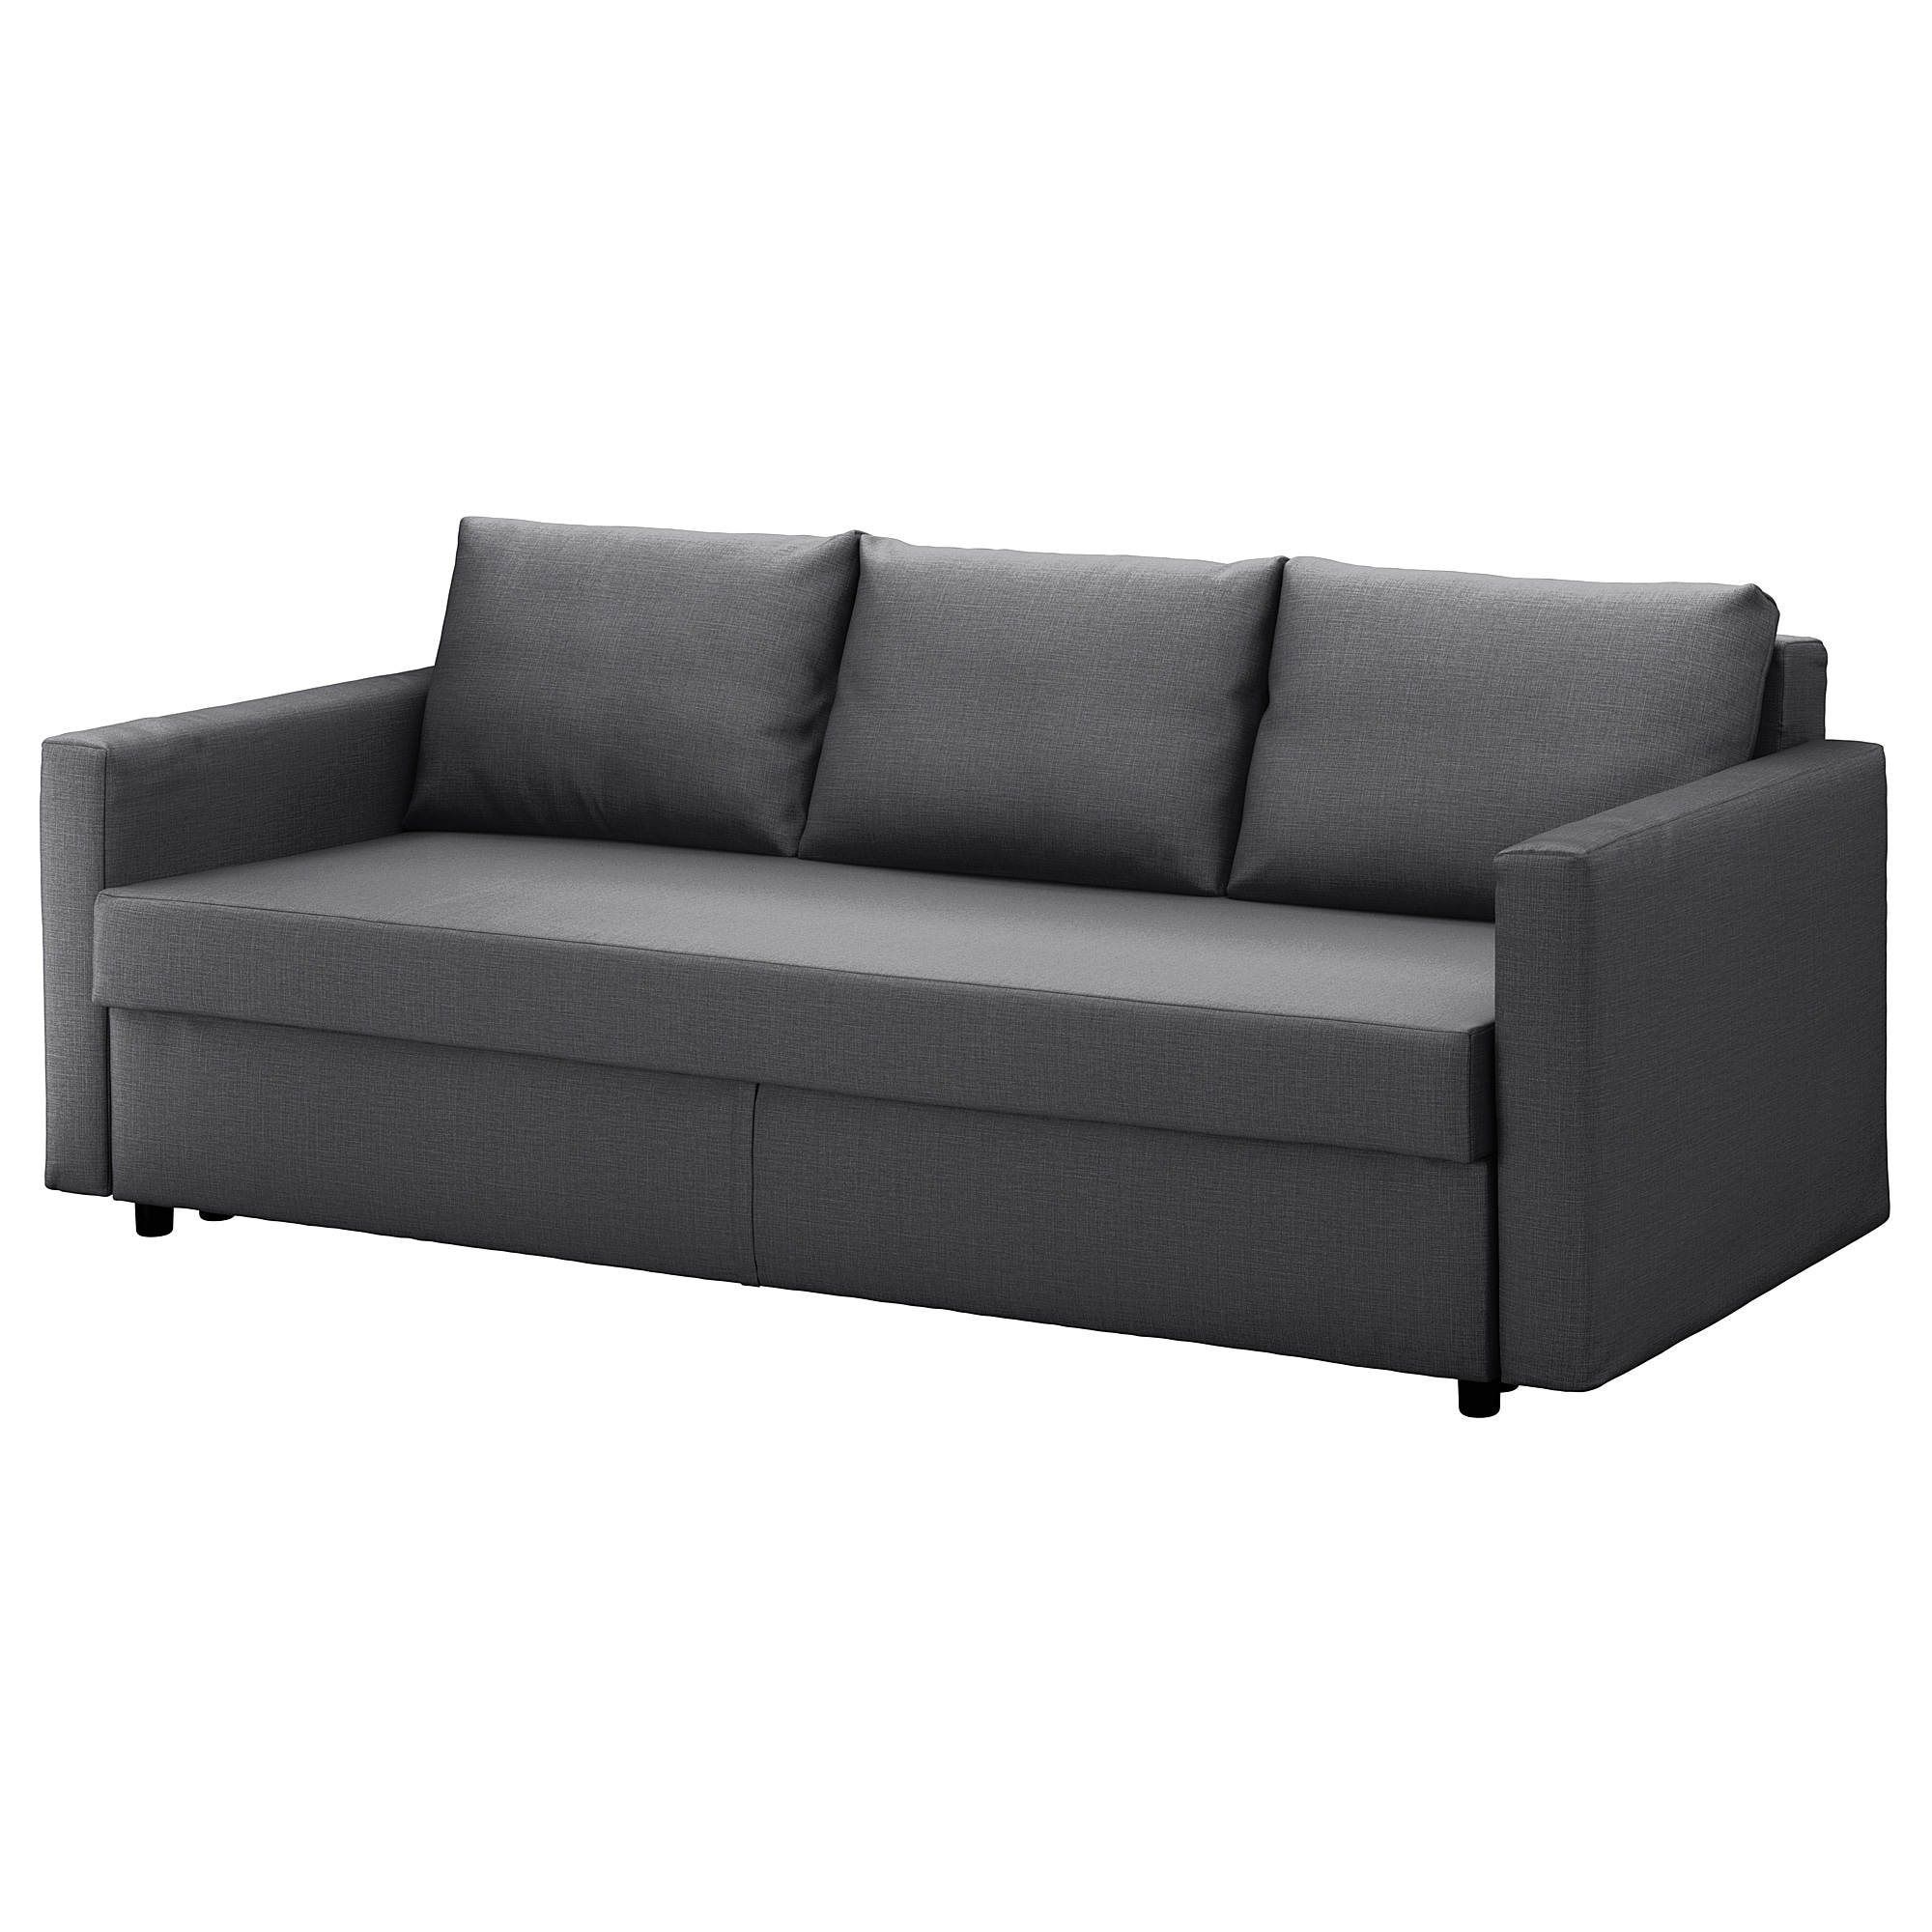 Friheten Sleeper Sofa Skiftebo Dark Gray Rh Com Bed Uk